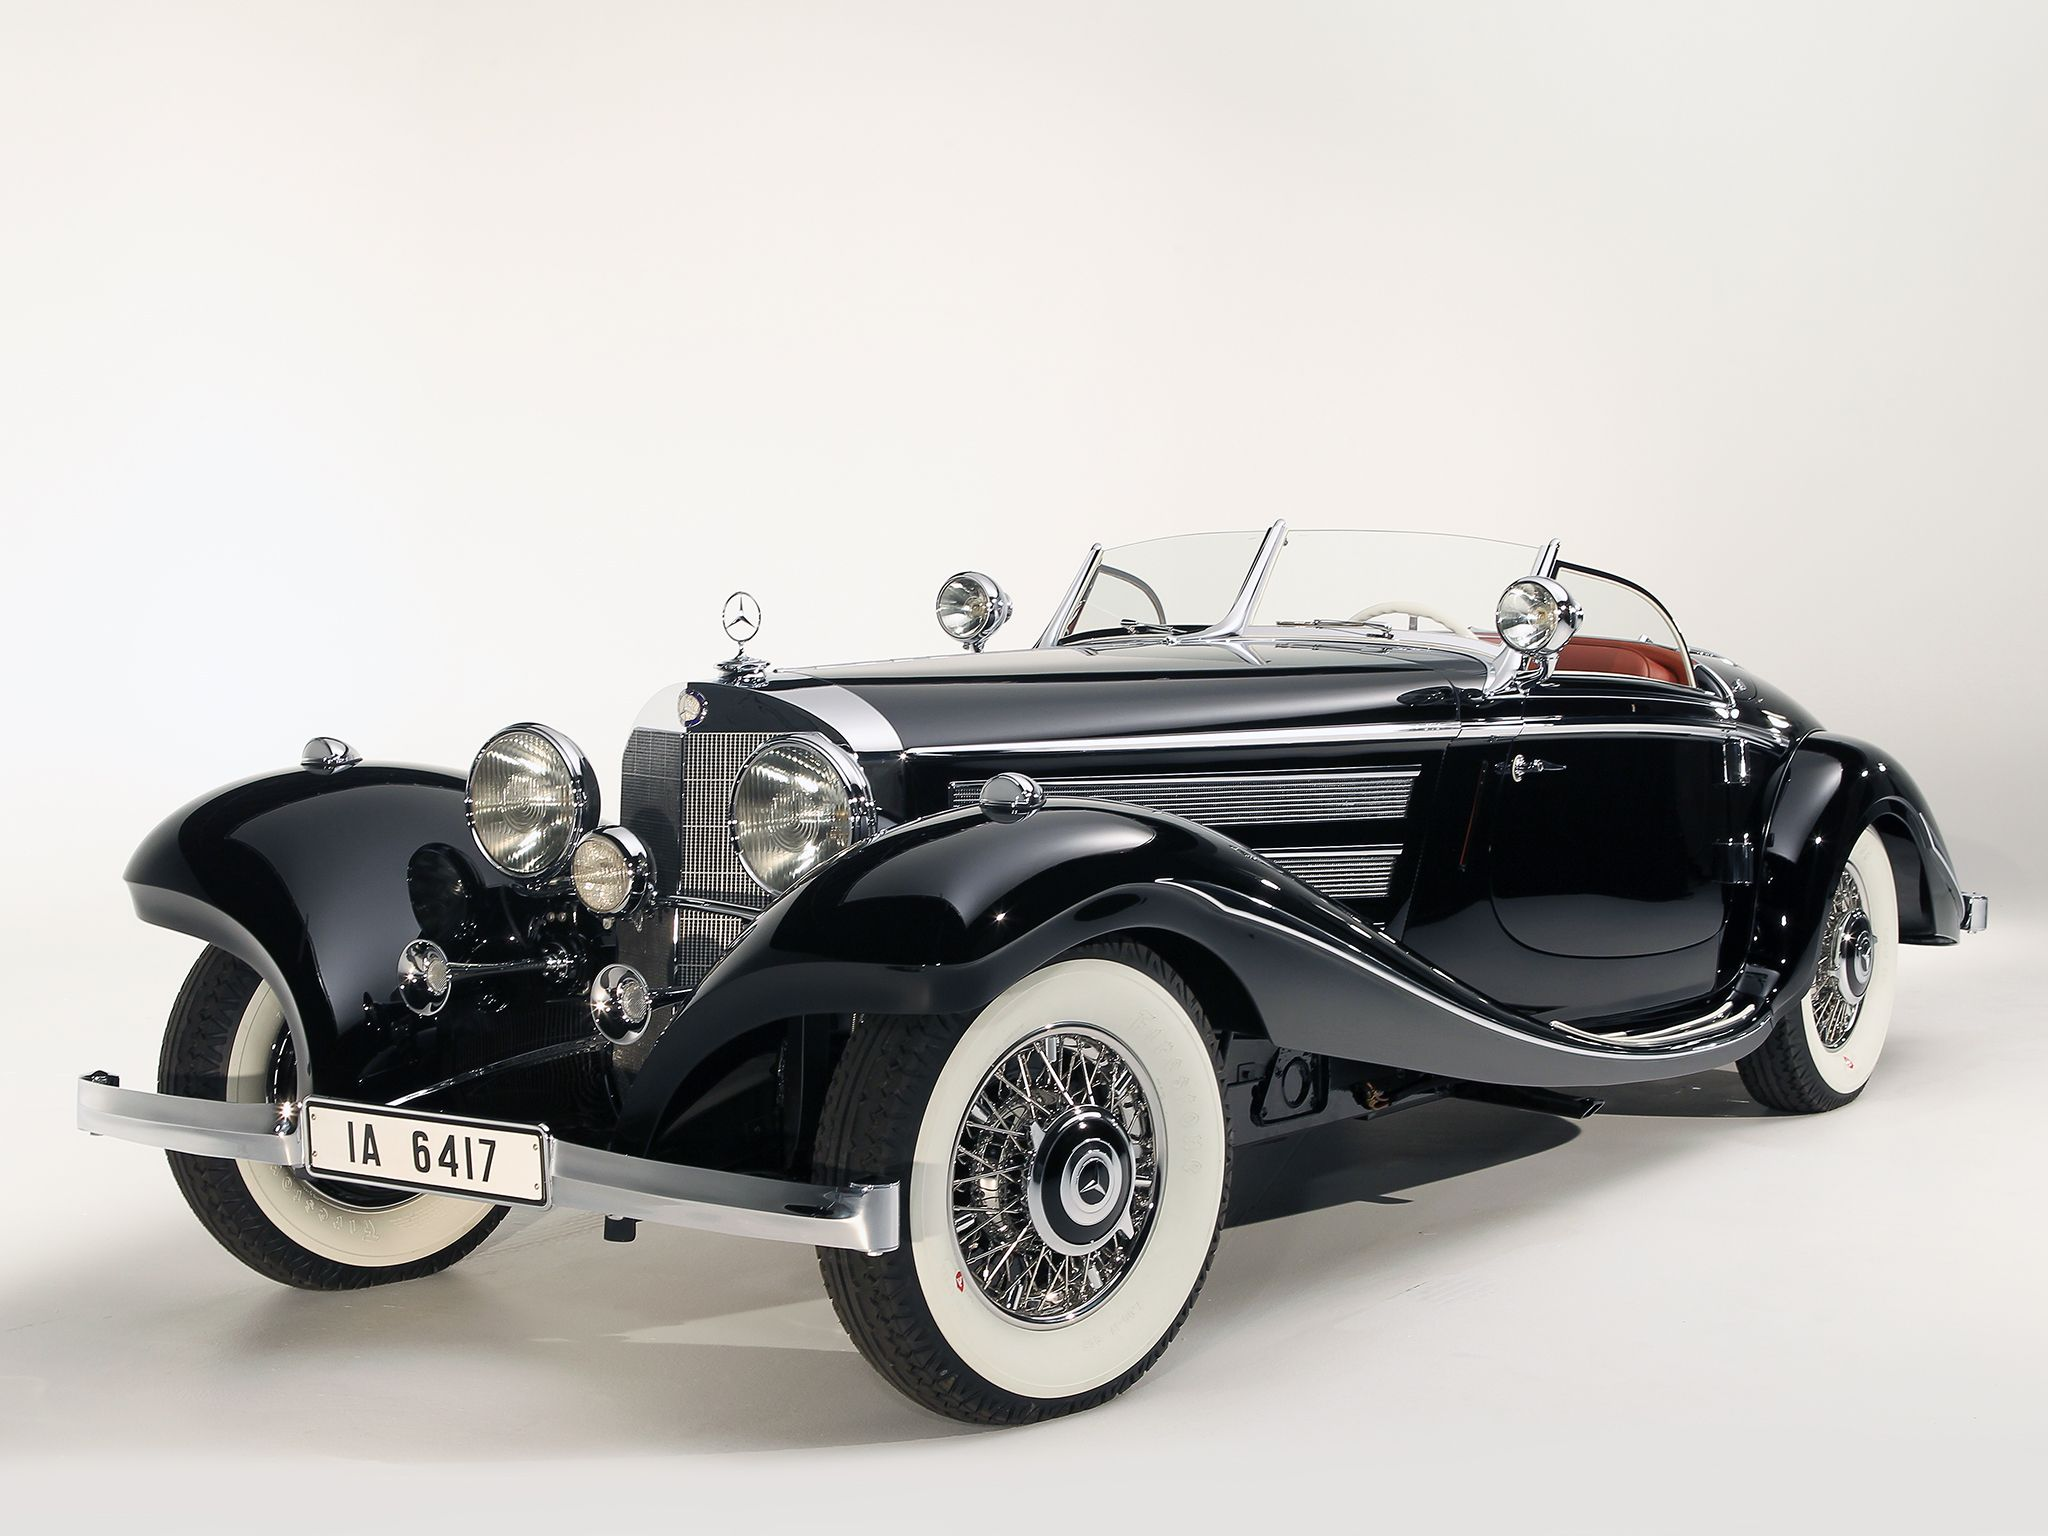 1936 Mercedes Benz 540k Special Roadster Arguably The Best Looking Mercedes Of All Time The 540k Is A Stately Classic Cars Expensive Cars Old Classic Cars